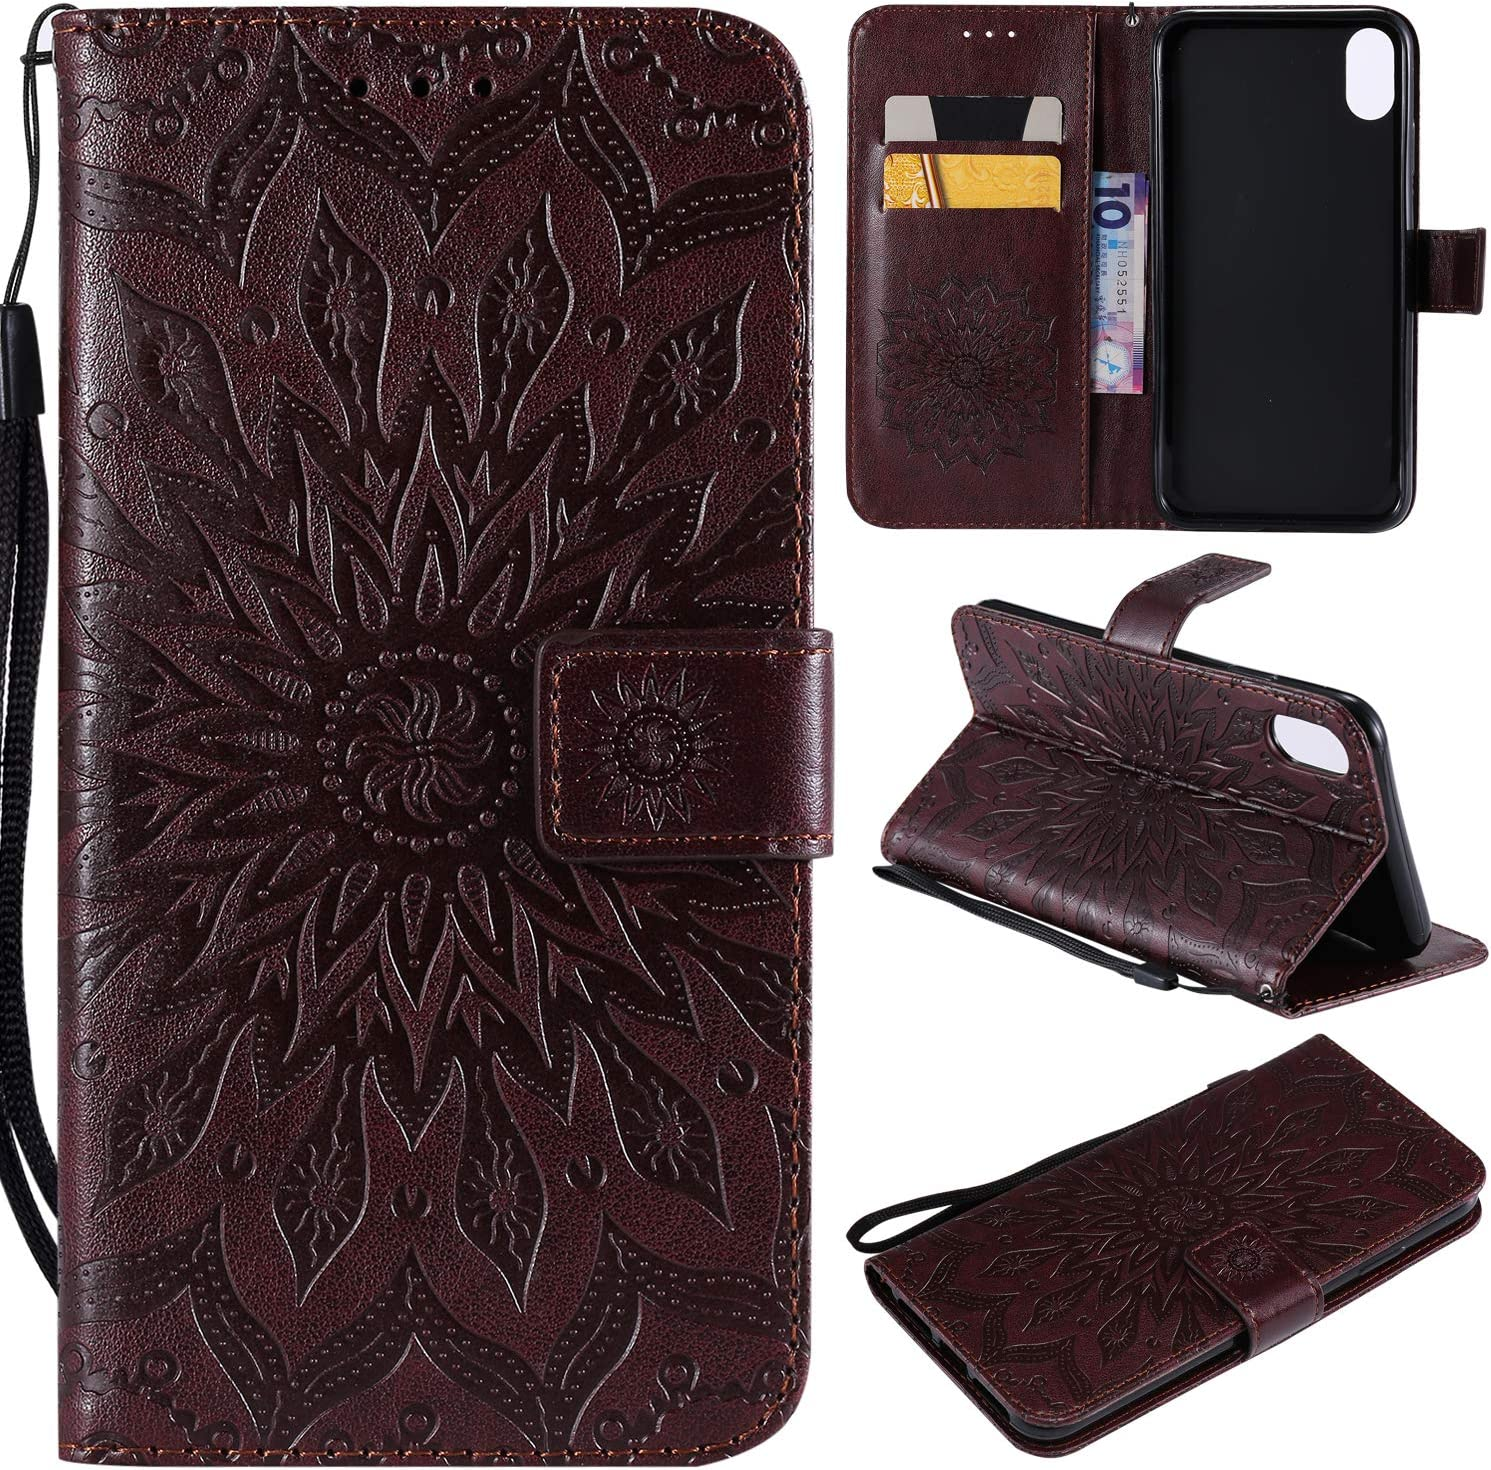 iPhone XS MAX Case,iPhone XS MAX Wallet Case,iPhone XS MAX Filp Case,Sun Flower Embossed PU Leather Magnetic Card Holders Hand Strap TPU Inner Bumper Purse Case for iPhone XS MAX 6.5 Inch Brown